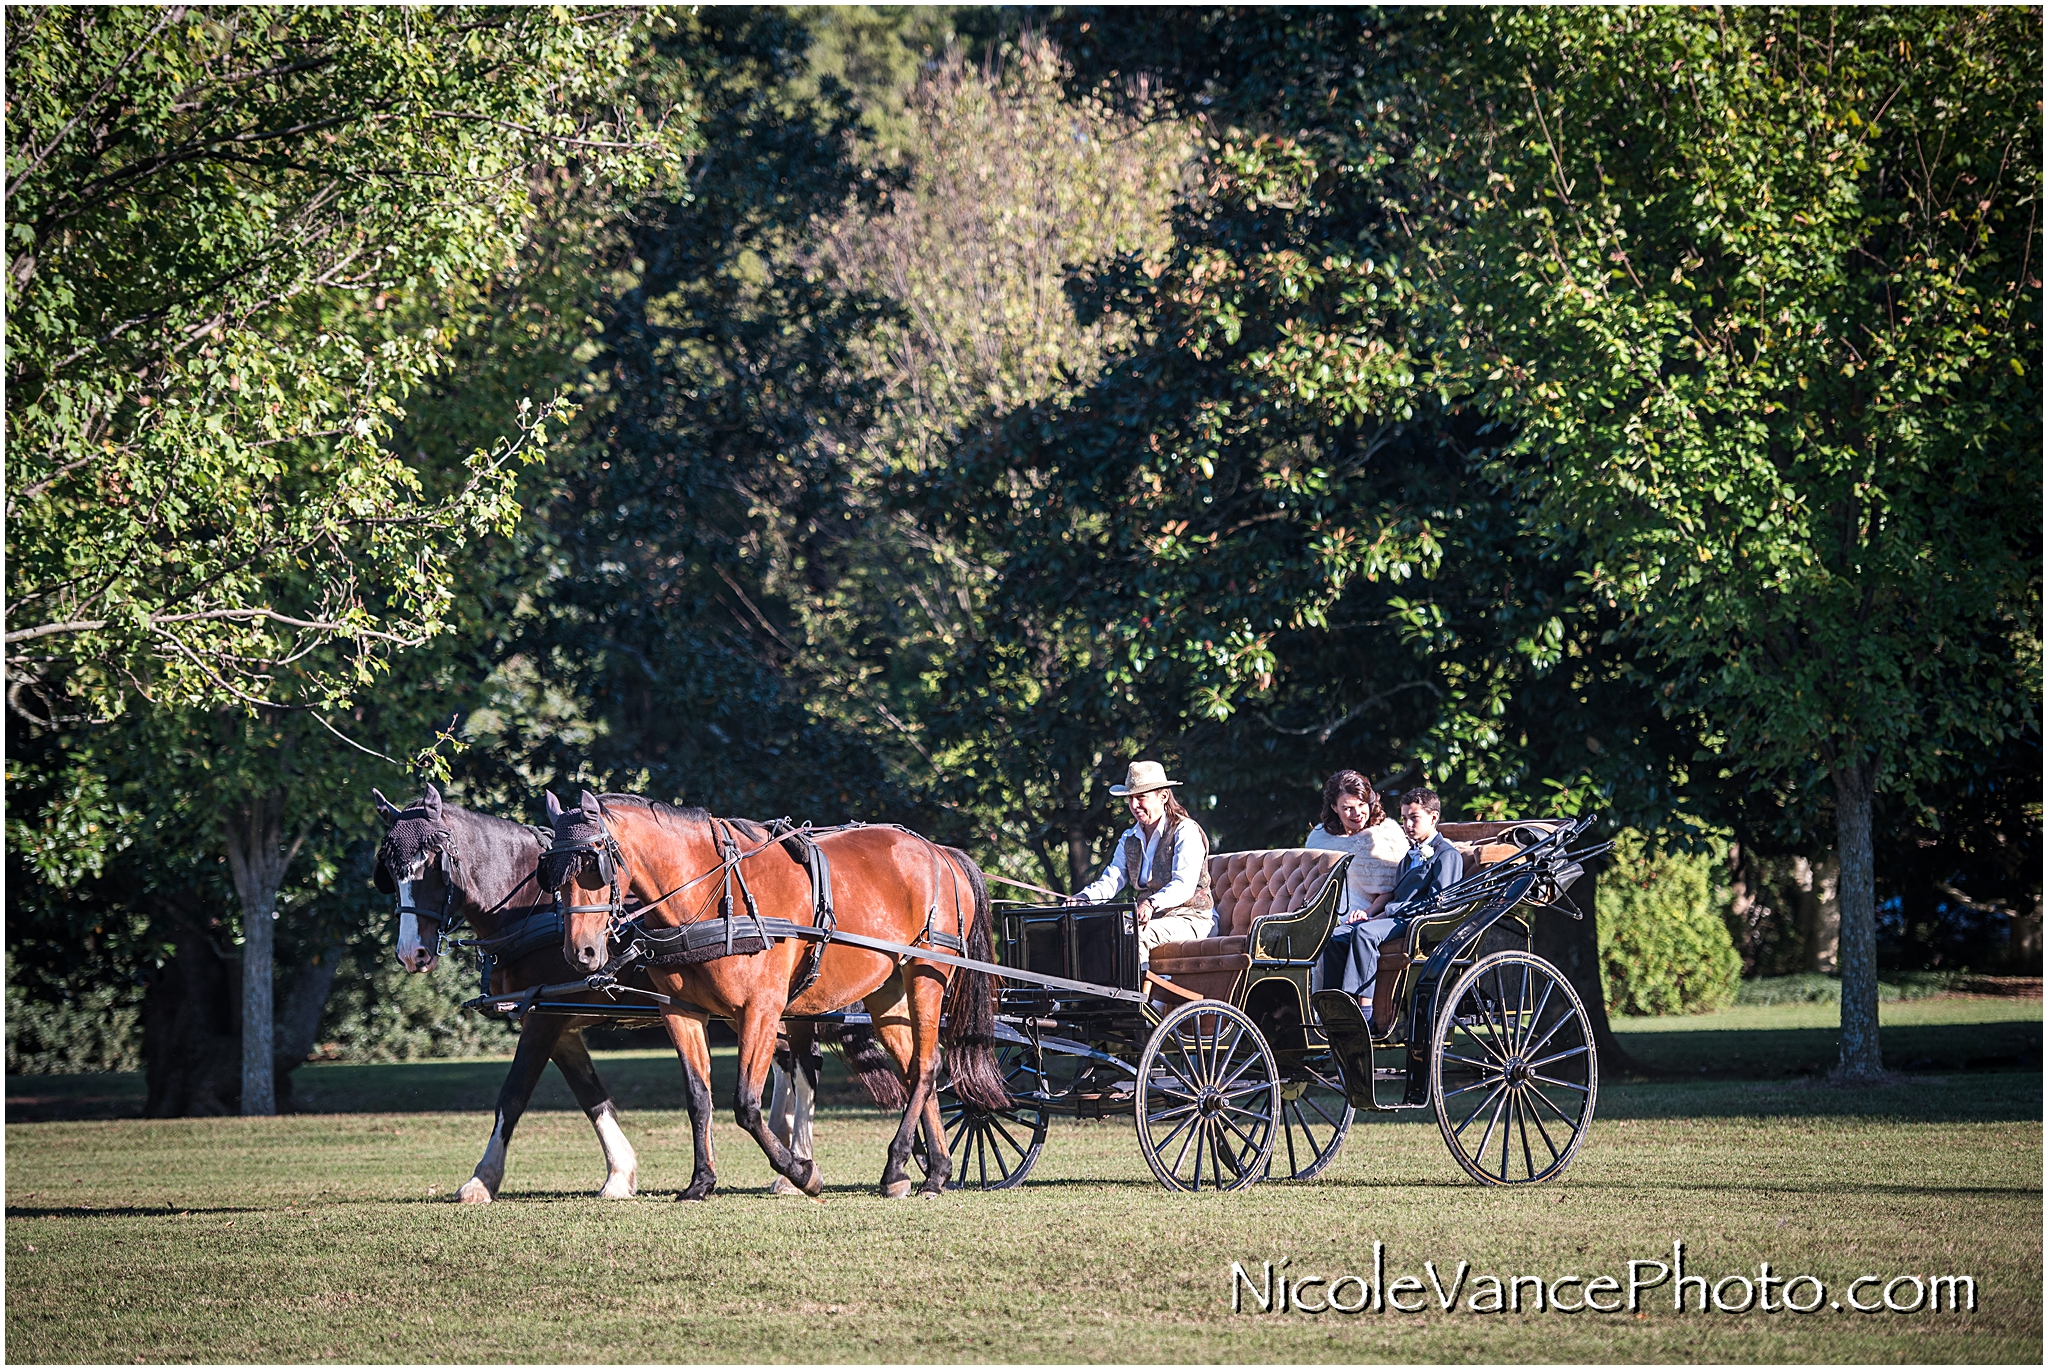 The bride and her son enjoy a horse drawn carriage ride to the wedding ceremony at Maymont Park in Richmond Virginia.